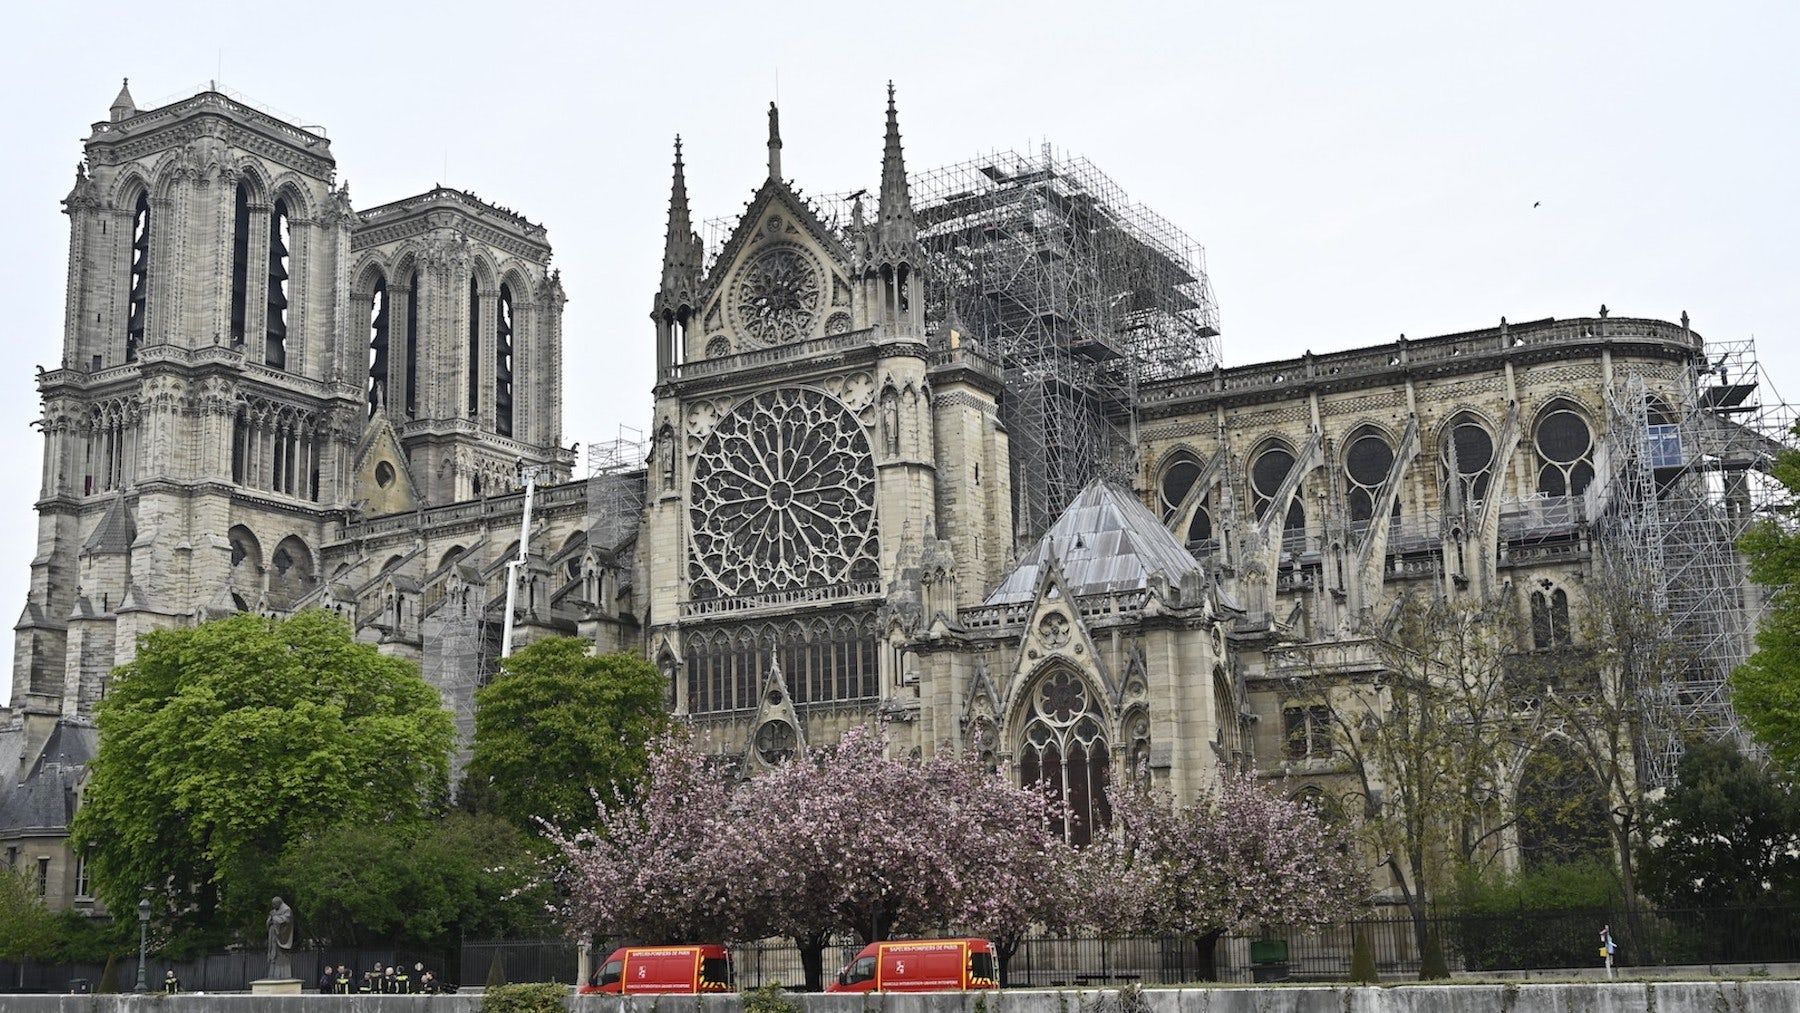 Notre Dame Cathedral Tuesday morning, the day after the fire | Source: Getty Images